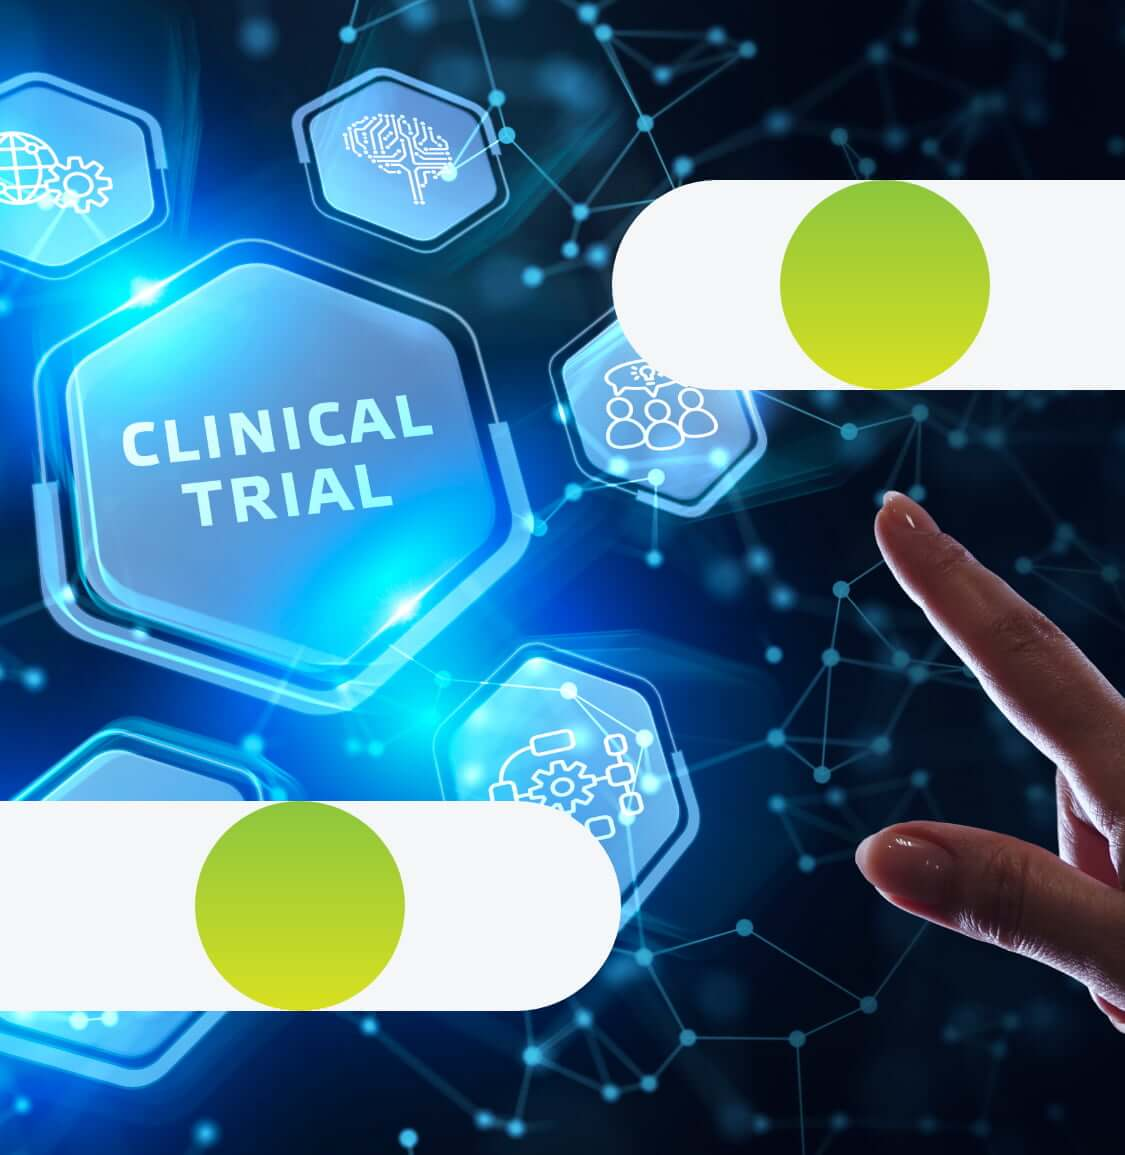 Image about clinical trial